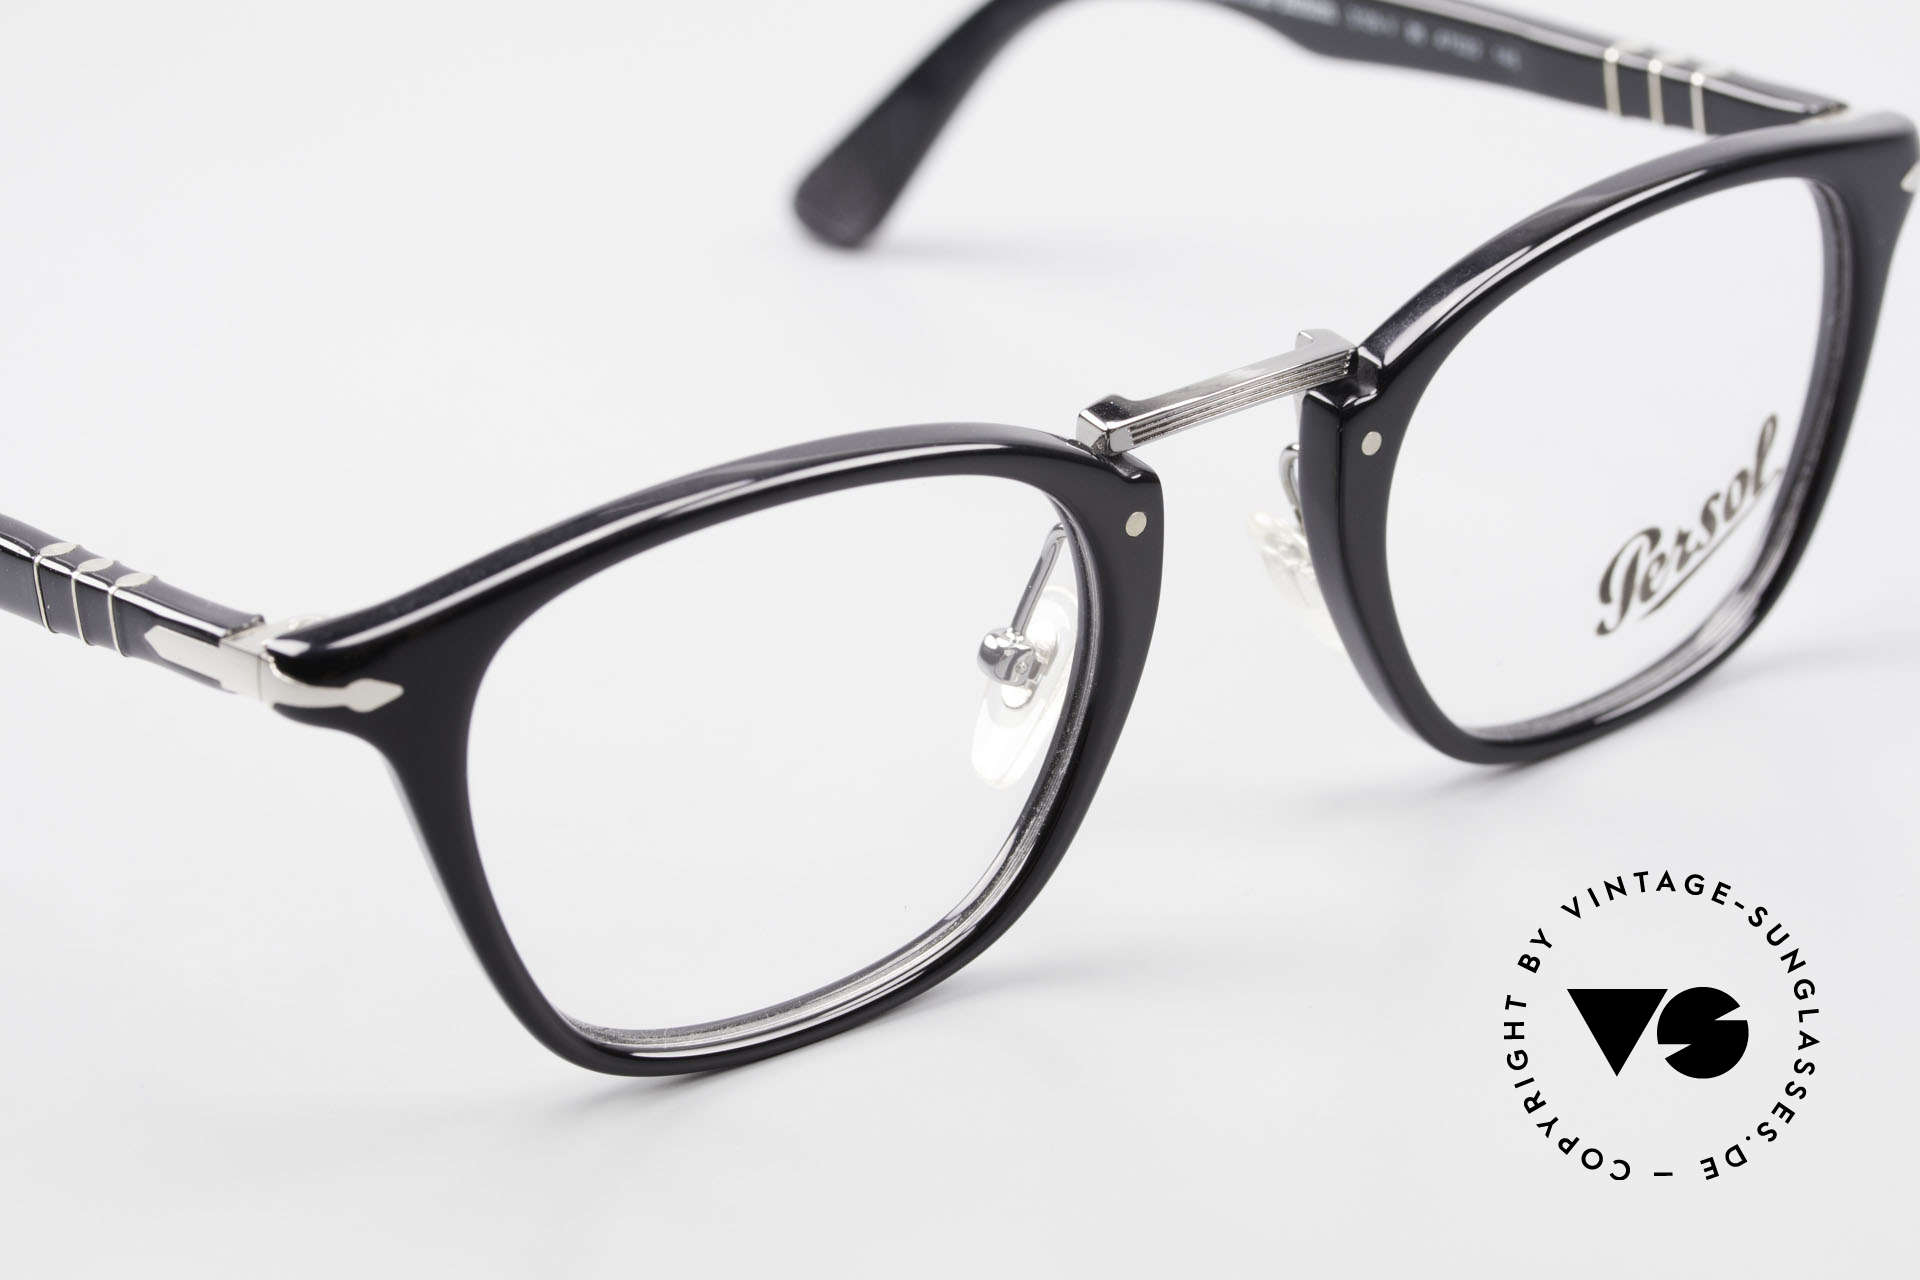 Persol 3109 Typewriter Edition Eyewear, DEMOS can be replaced with lenses of any kind, Made for Men and Women